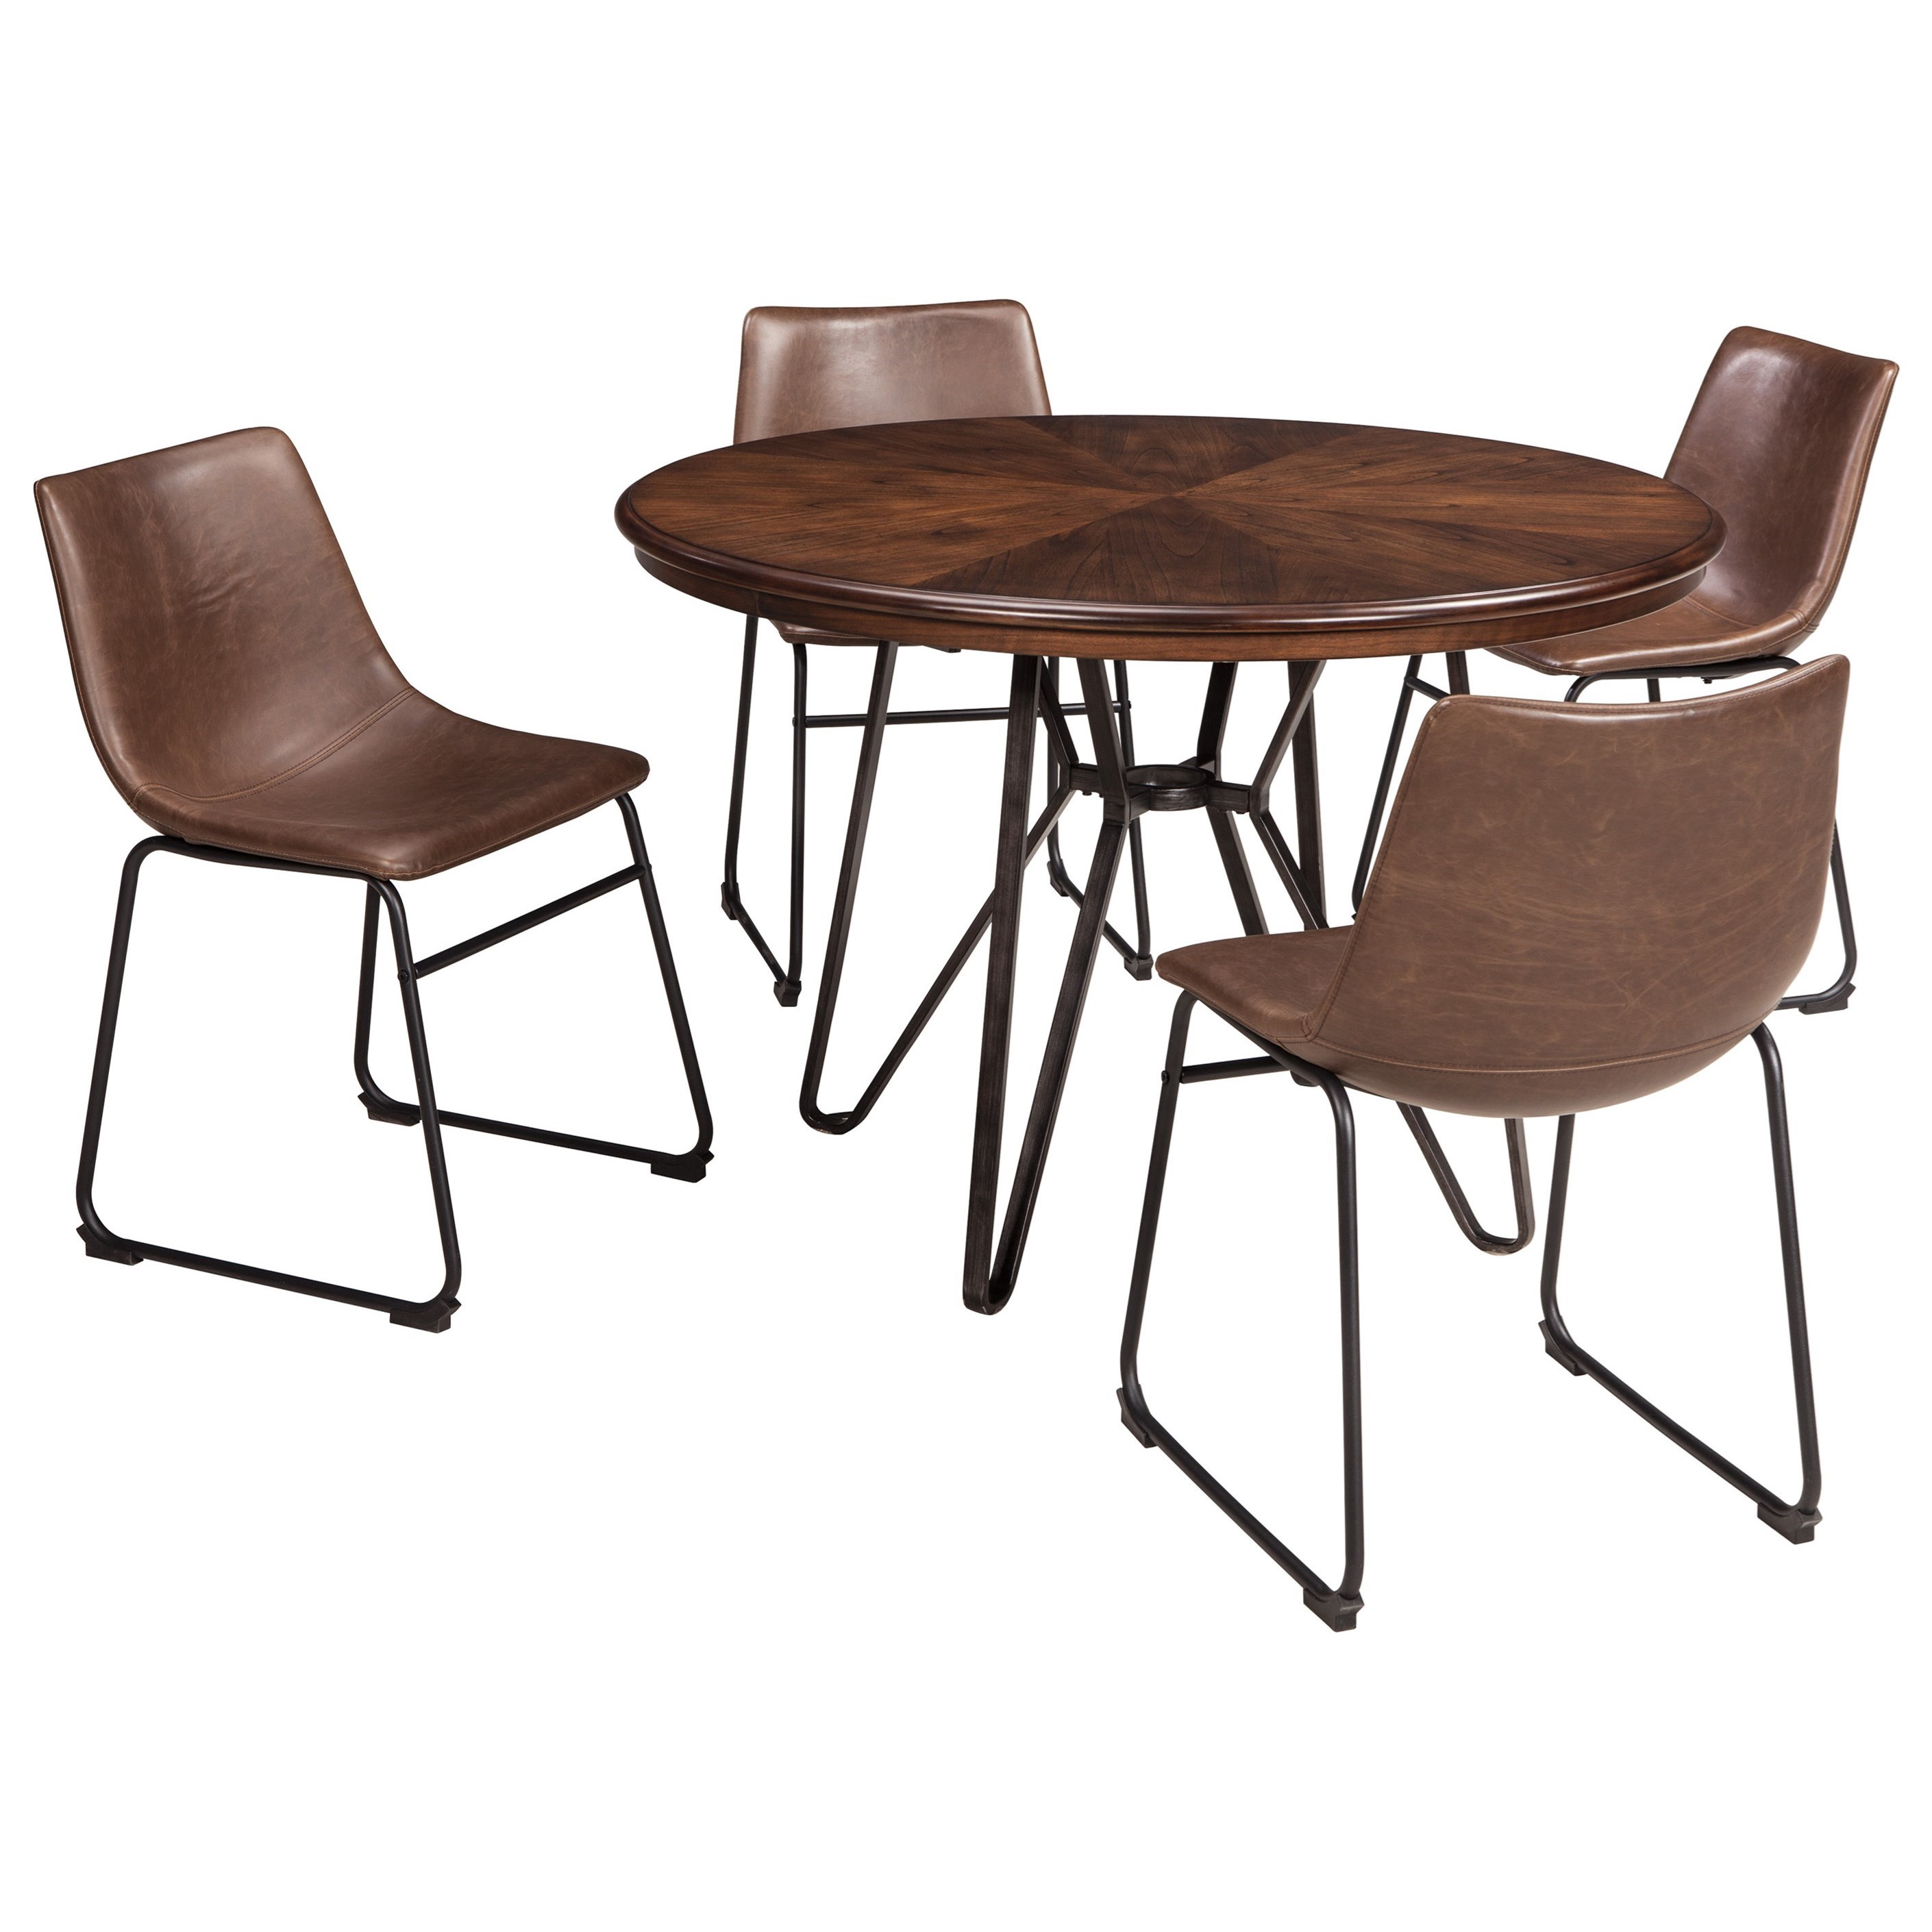 5 Piece Dining Room Sets Amazon Com: 5-Piece Round Dining Table Set By Signature Design By